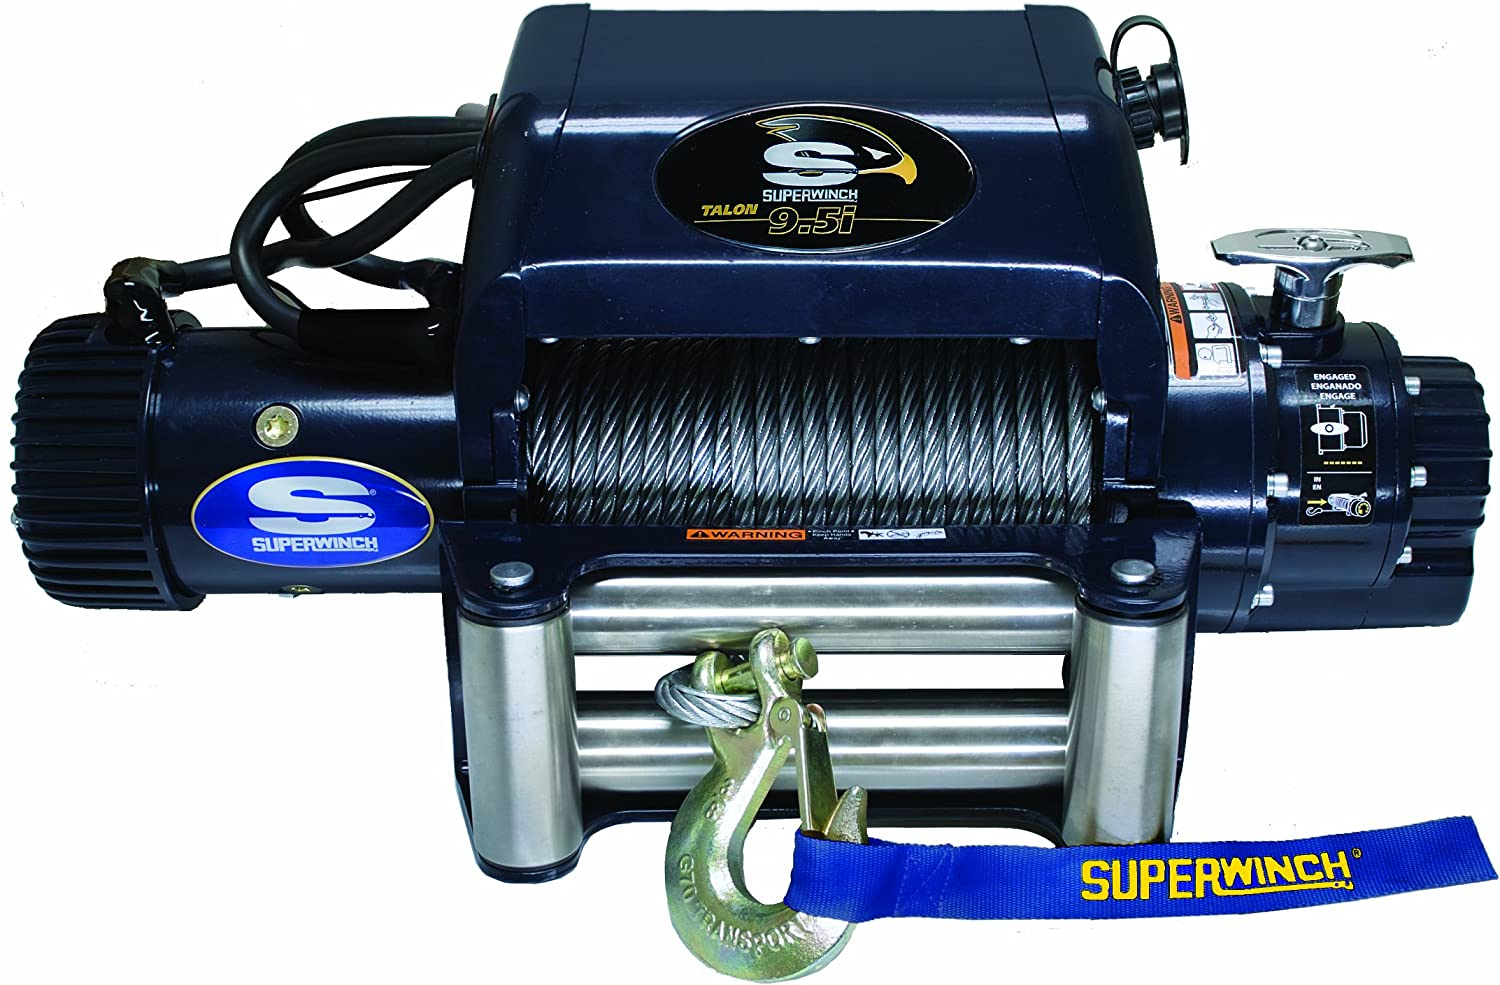 Superwinch 1695210 Talon 9.5i, 12 VDC winch, 9,500 lb/4,309 kg capacity with roller fairlead